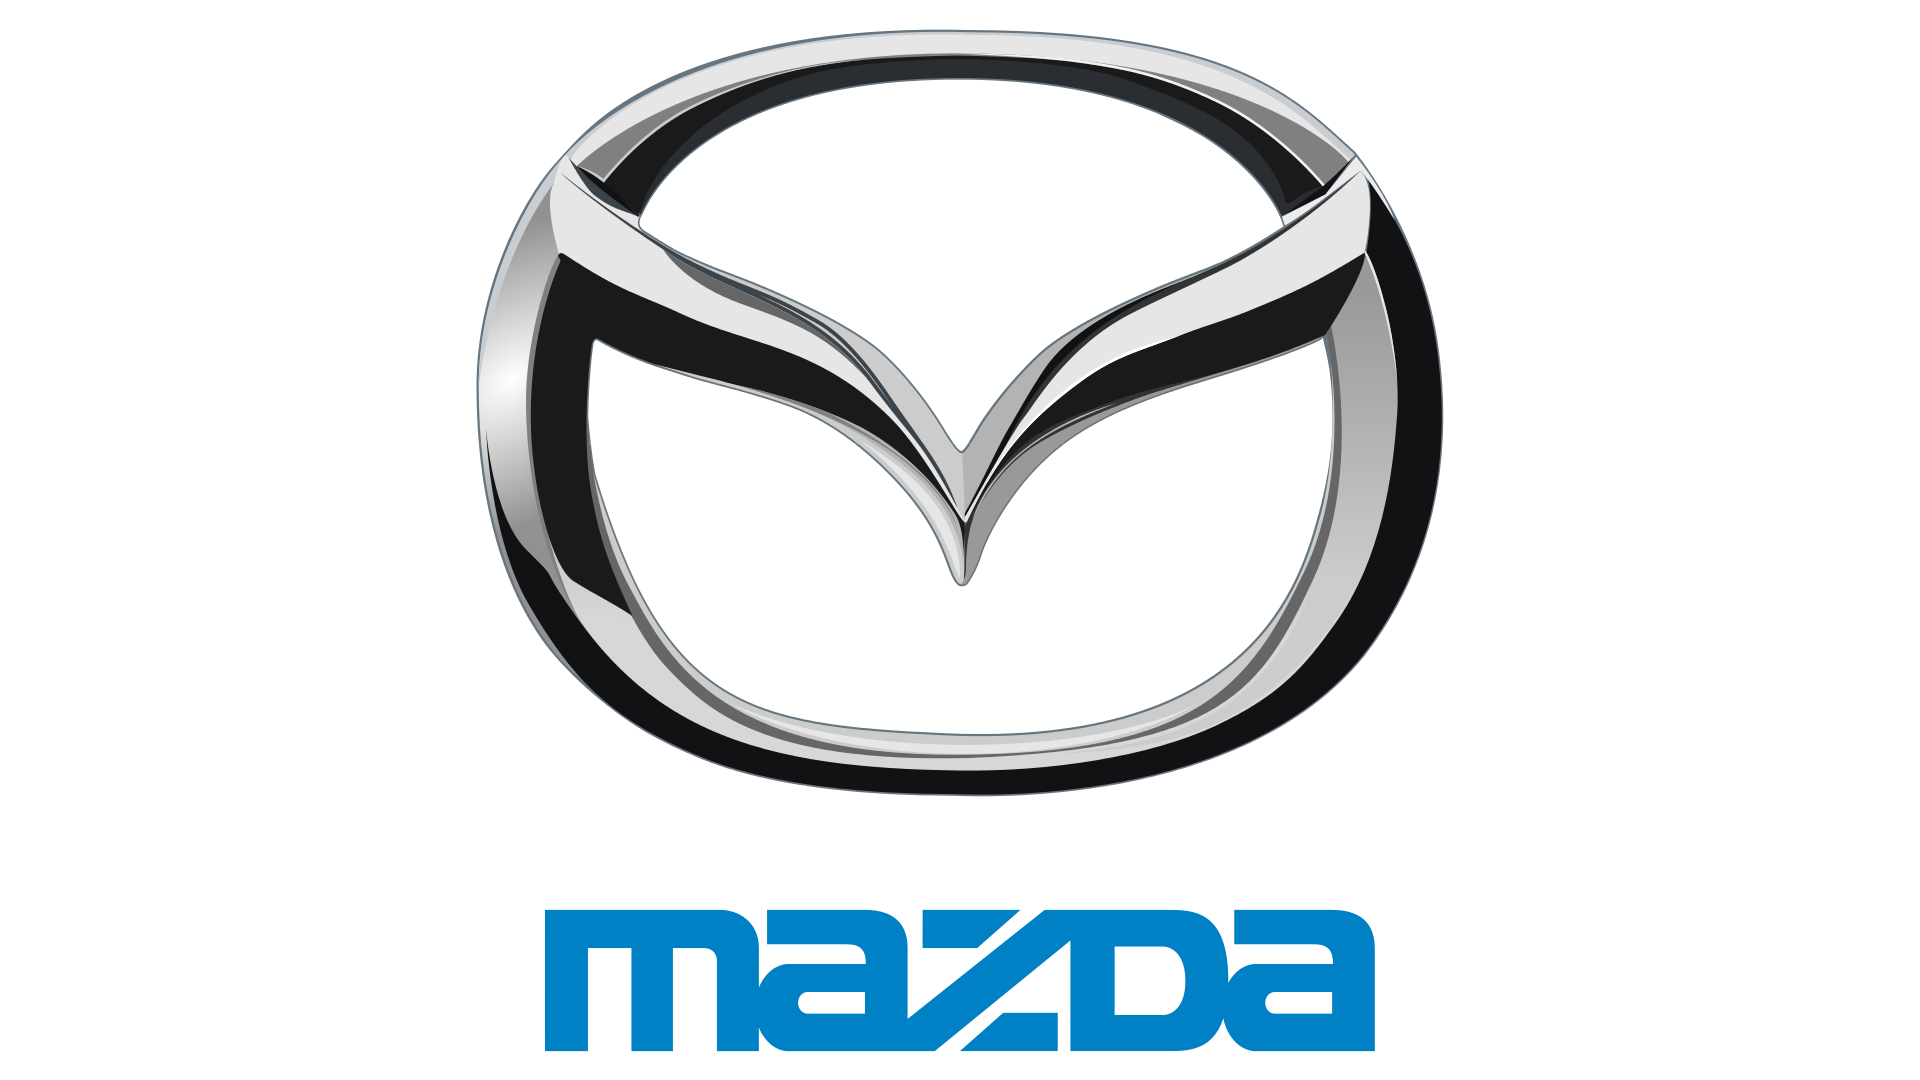 Mazda CA announces 100% Co-Op Eligibility for Textstr